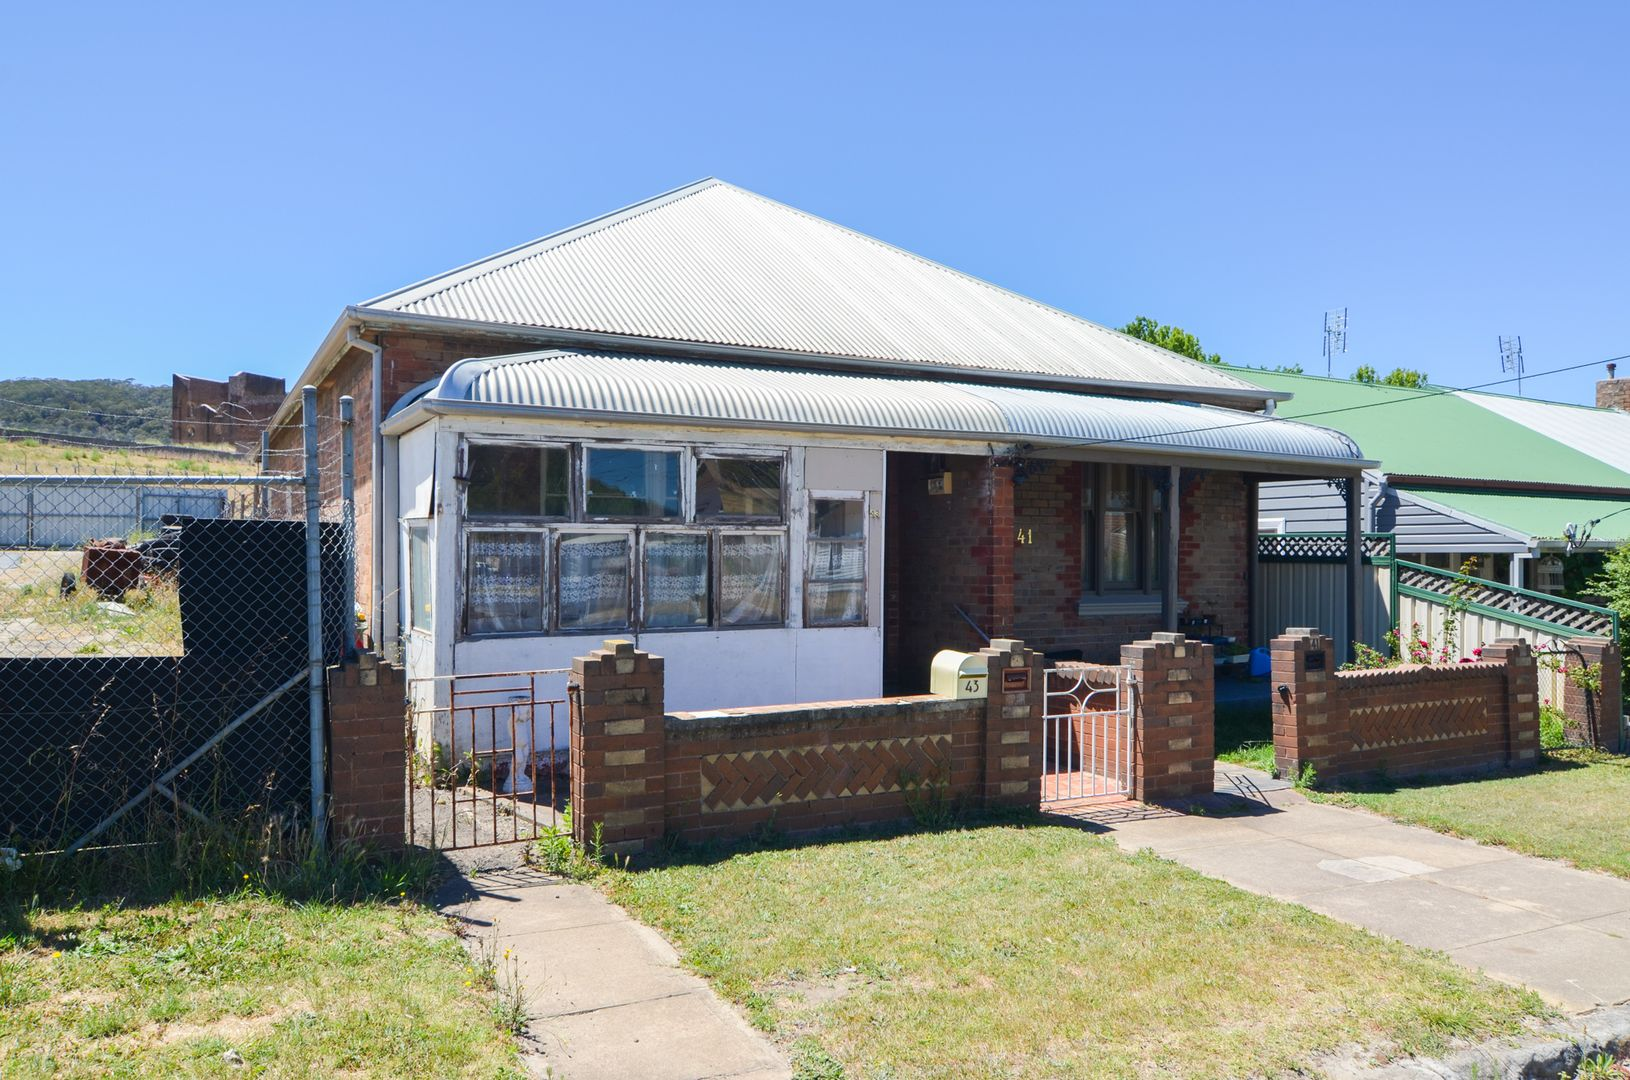 43 Inch Street, Lithgow NSW 2790, Image 0